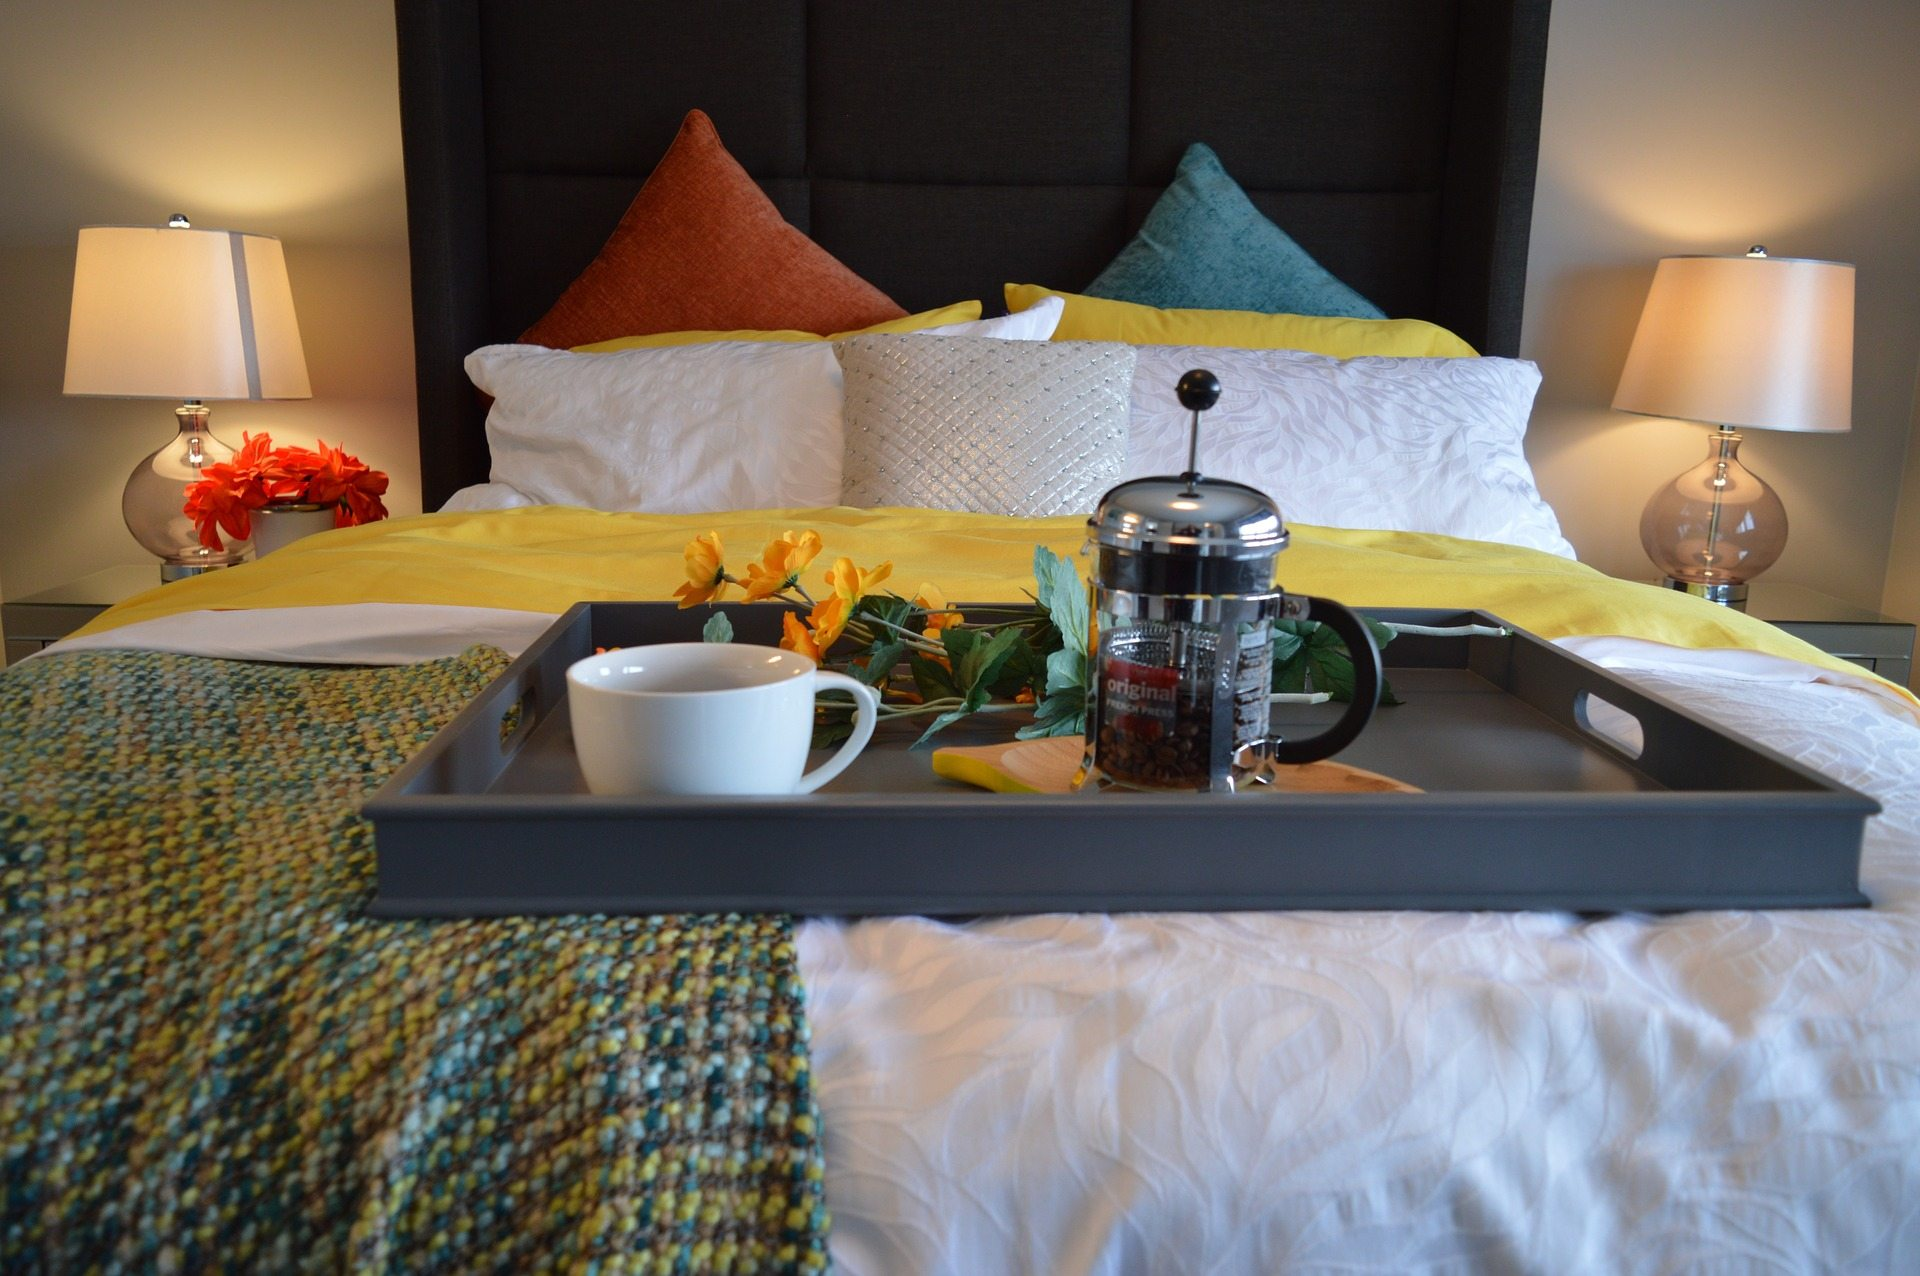 Romantically challenged spouses Pixabay breakfast-in-bed-1158270_1920